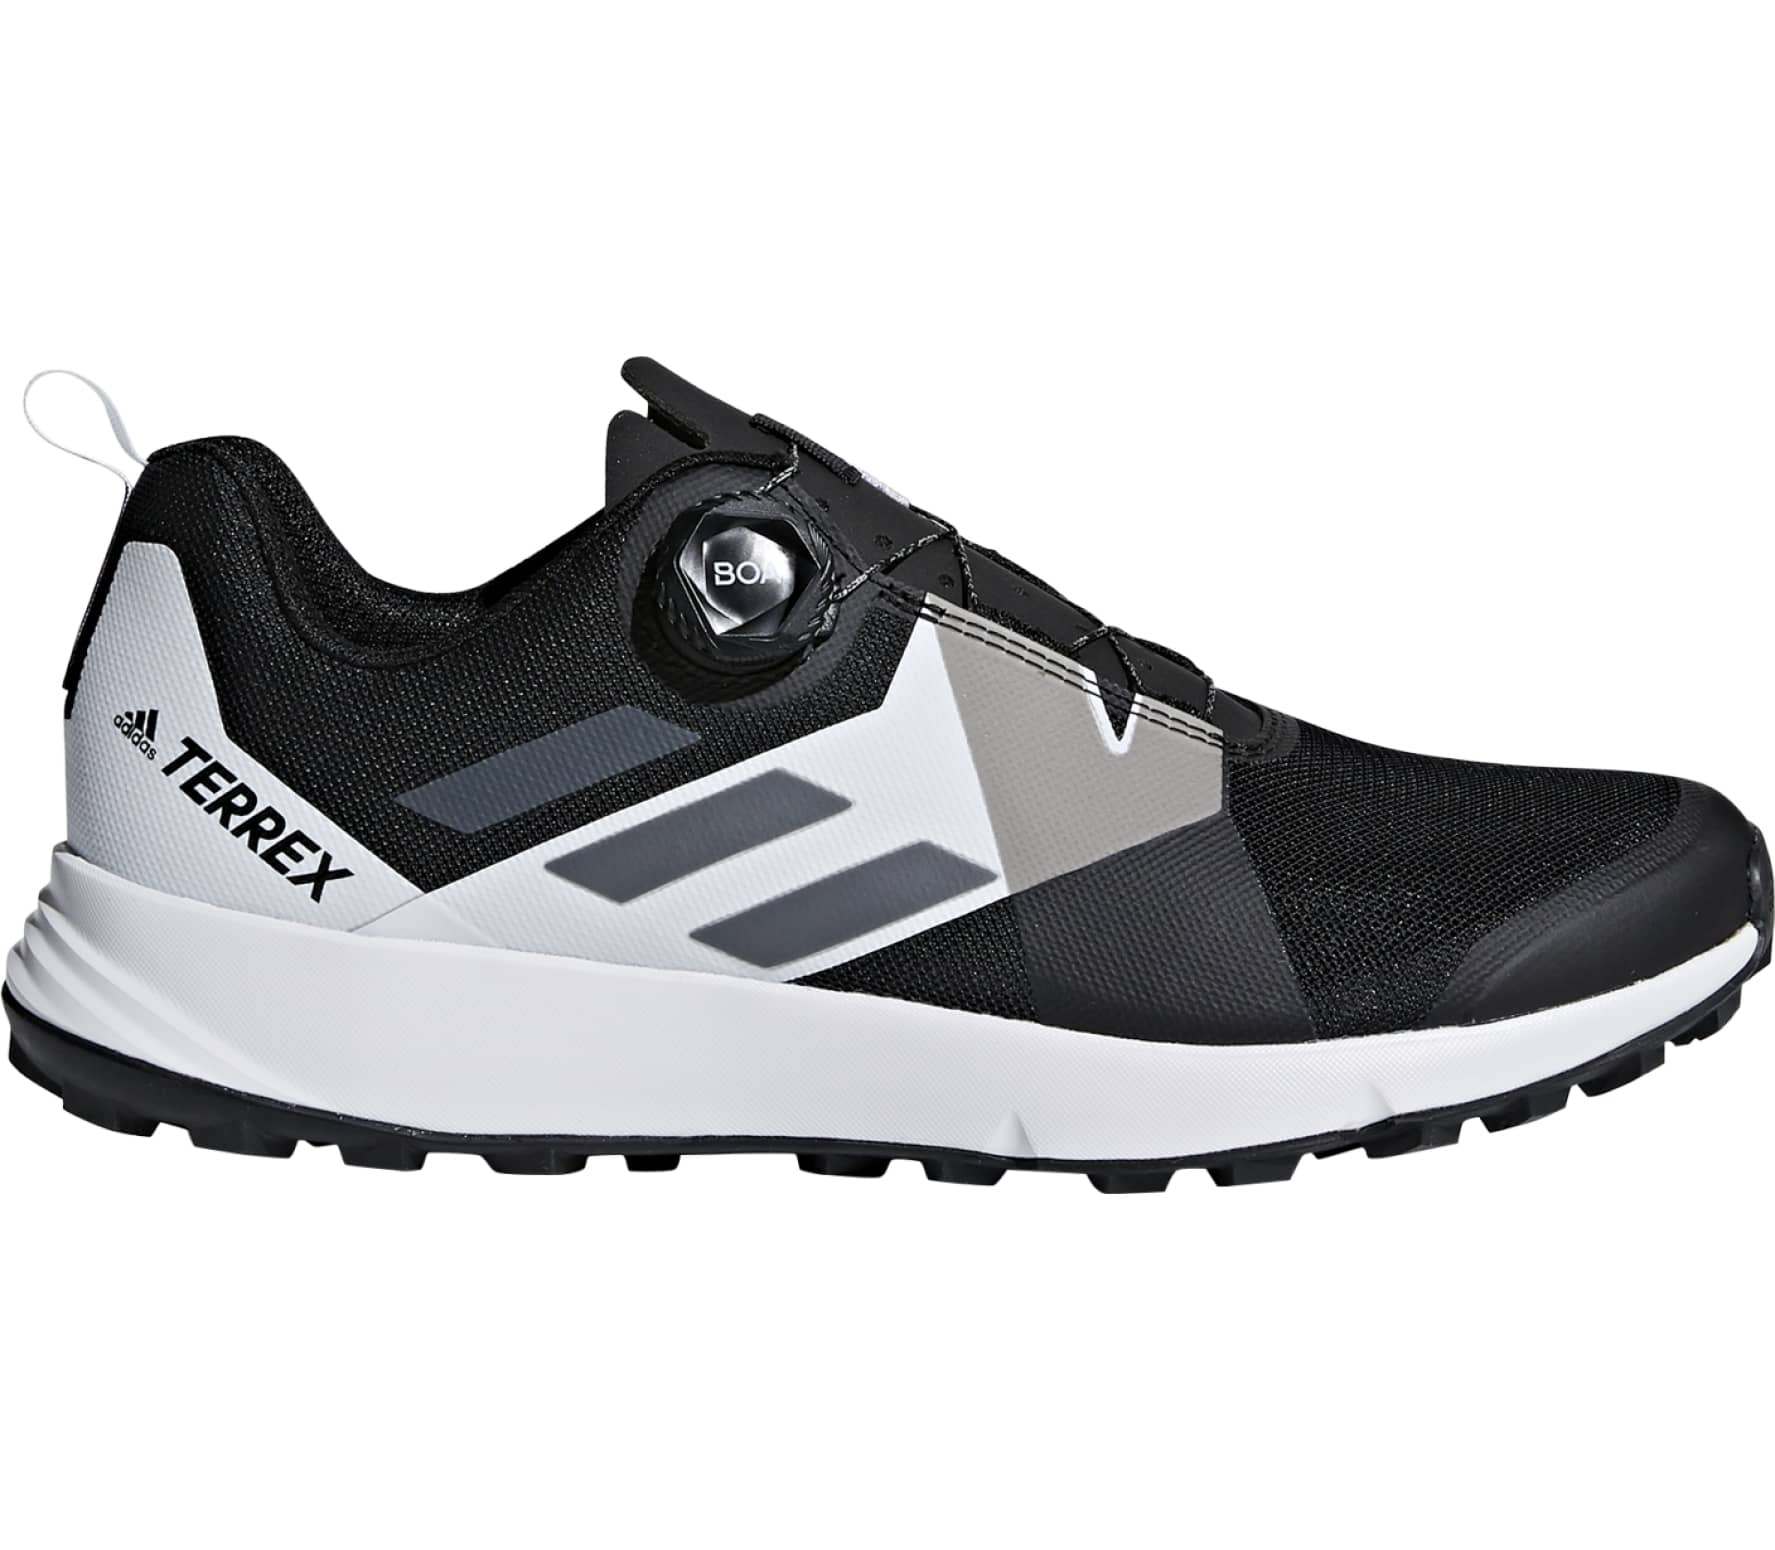 c9a00d054bba Adidas - Terrex Two Boa men s mountain running shoes (grey white ...